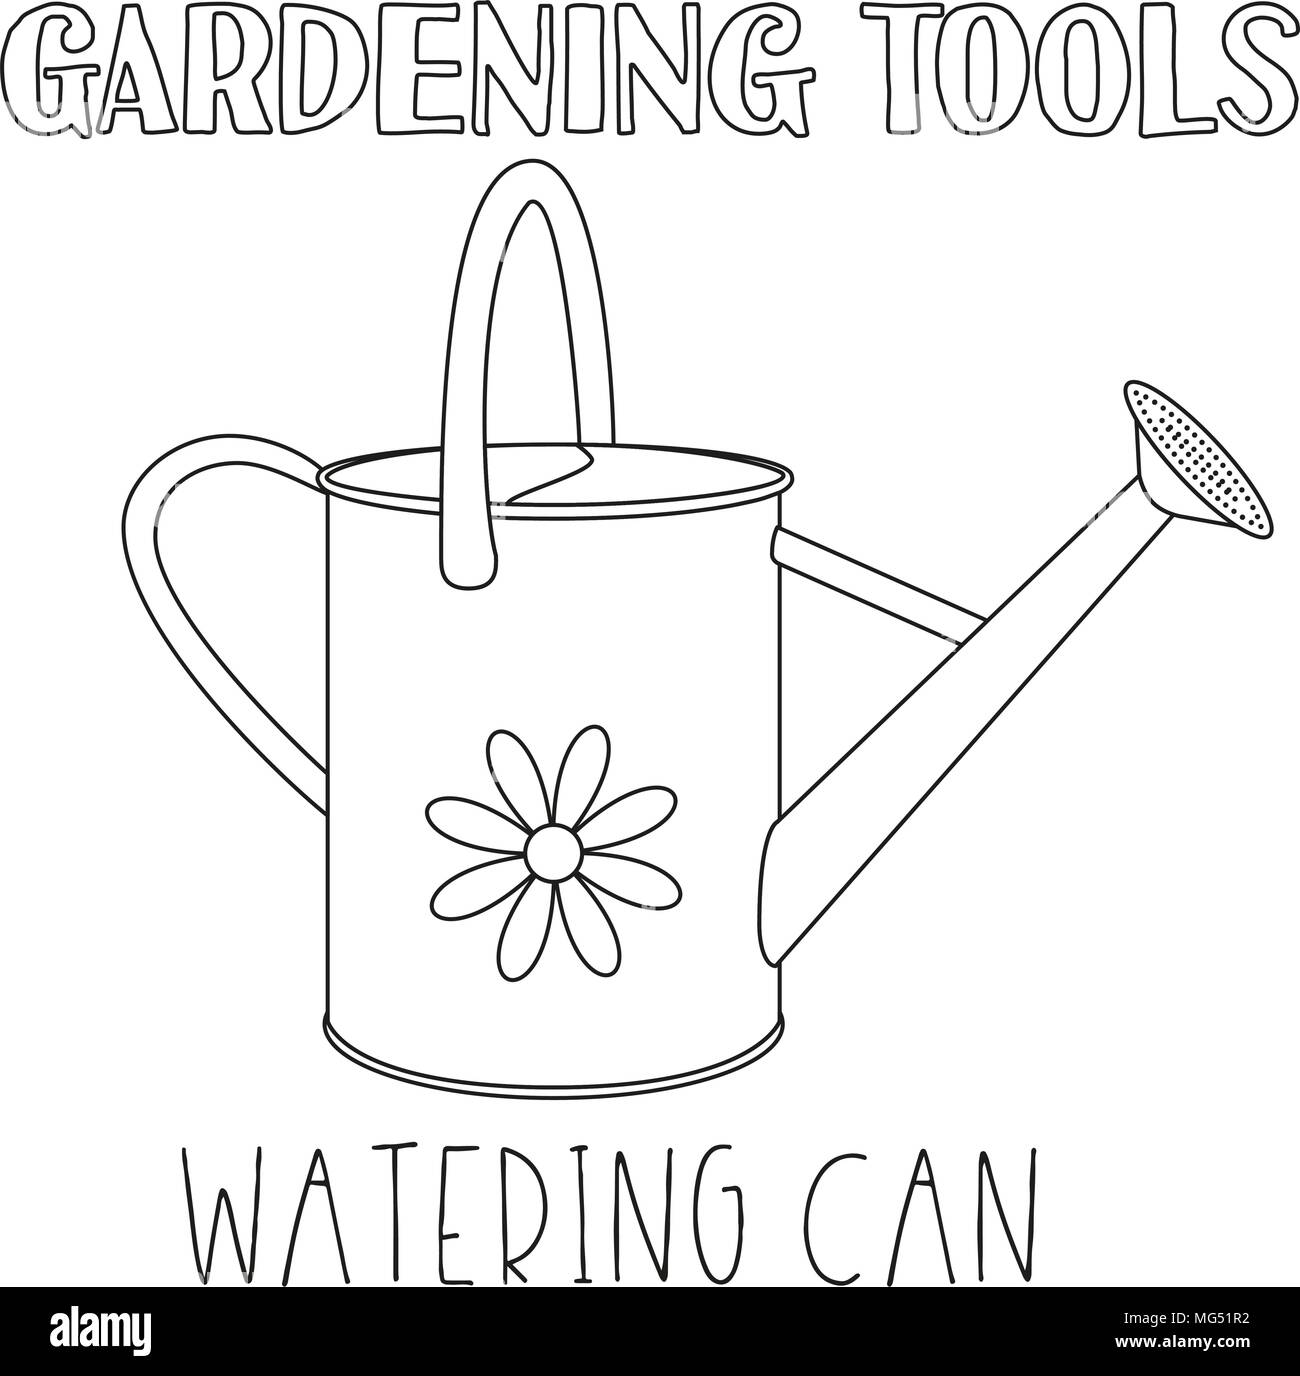 Line Art Black And White Watering Can Coloring Book Page For Adults Kids Garden Tool Vector Illustration Gift Card Certificate Sticker Badg